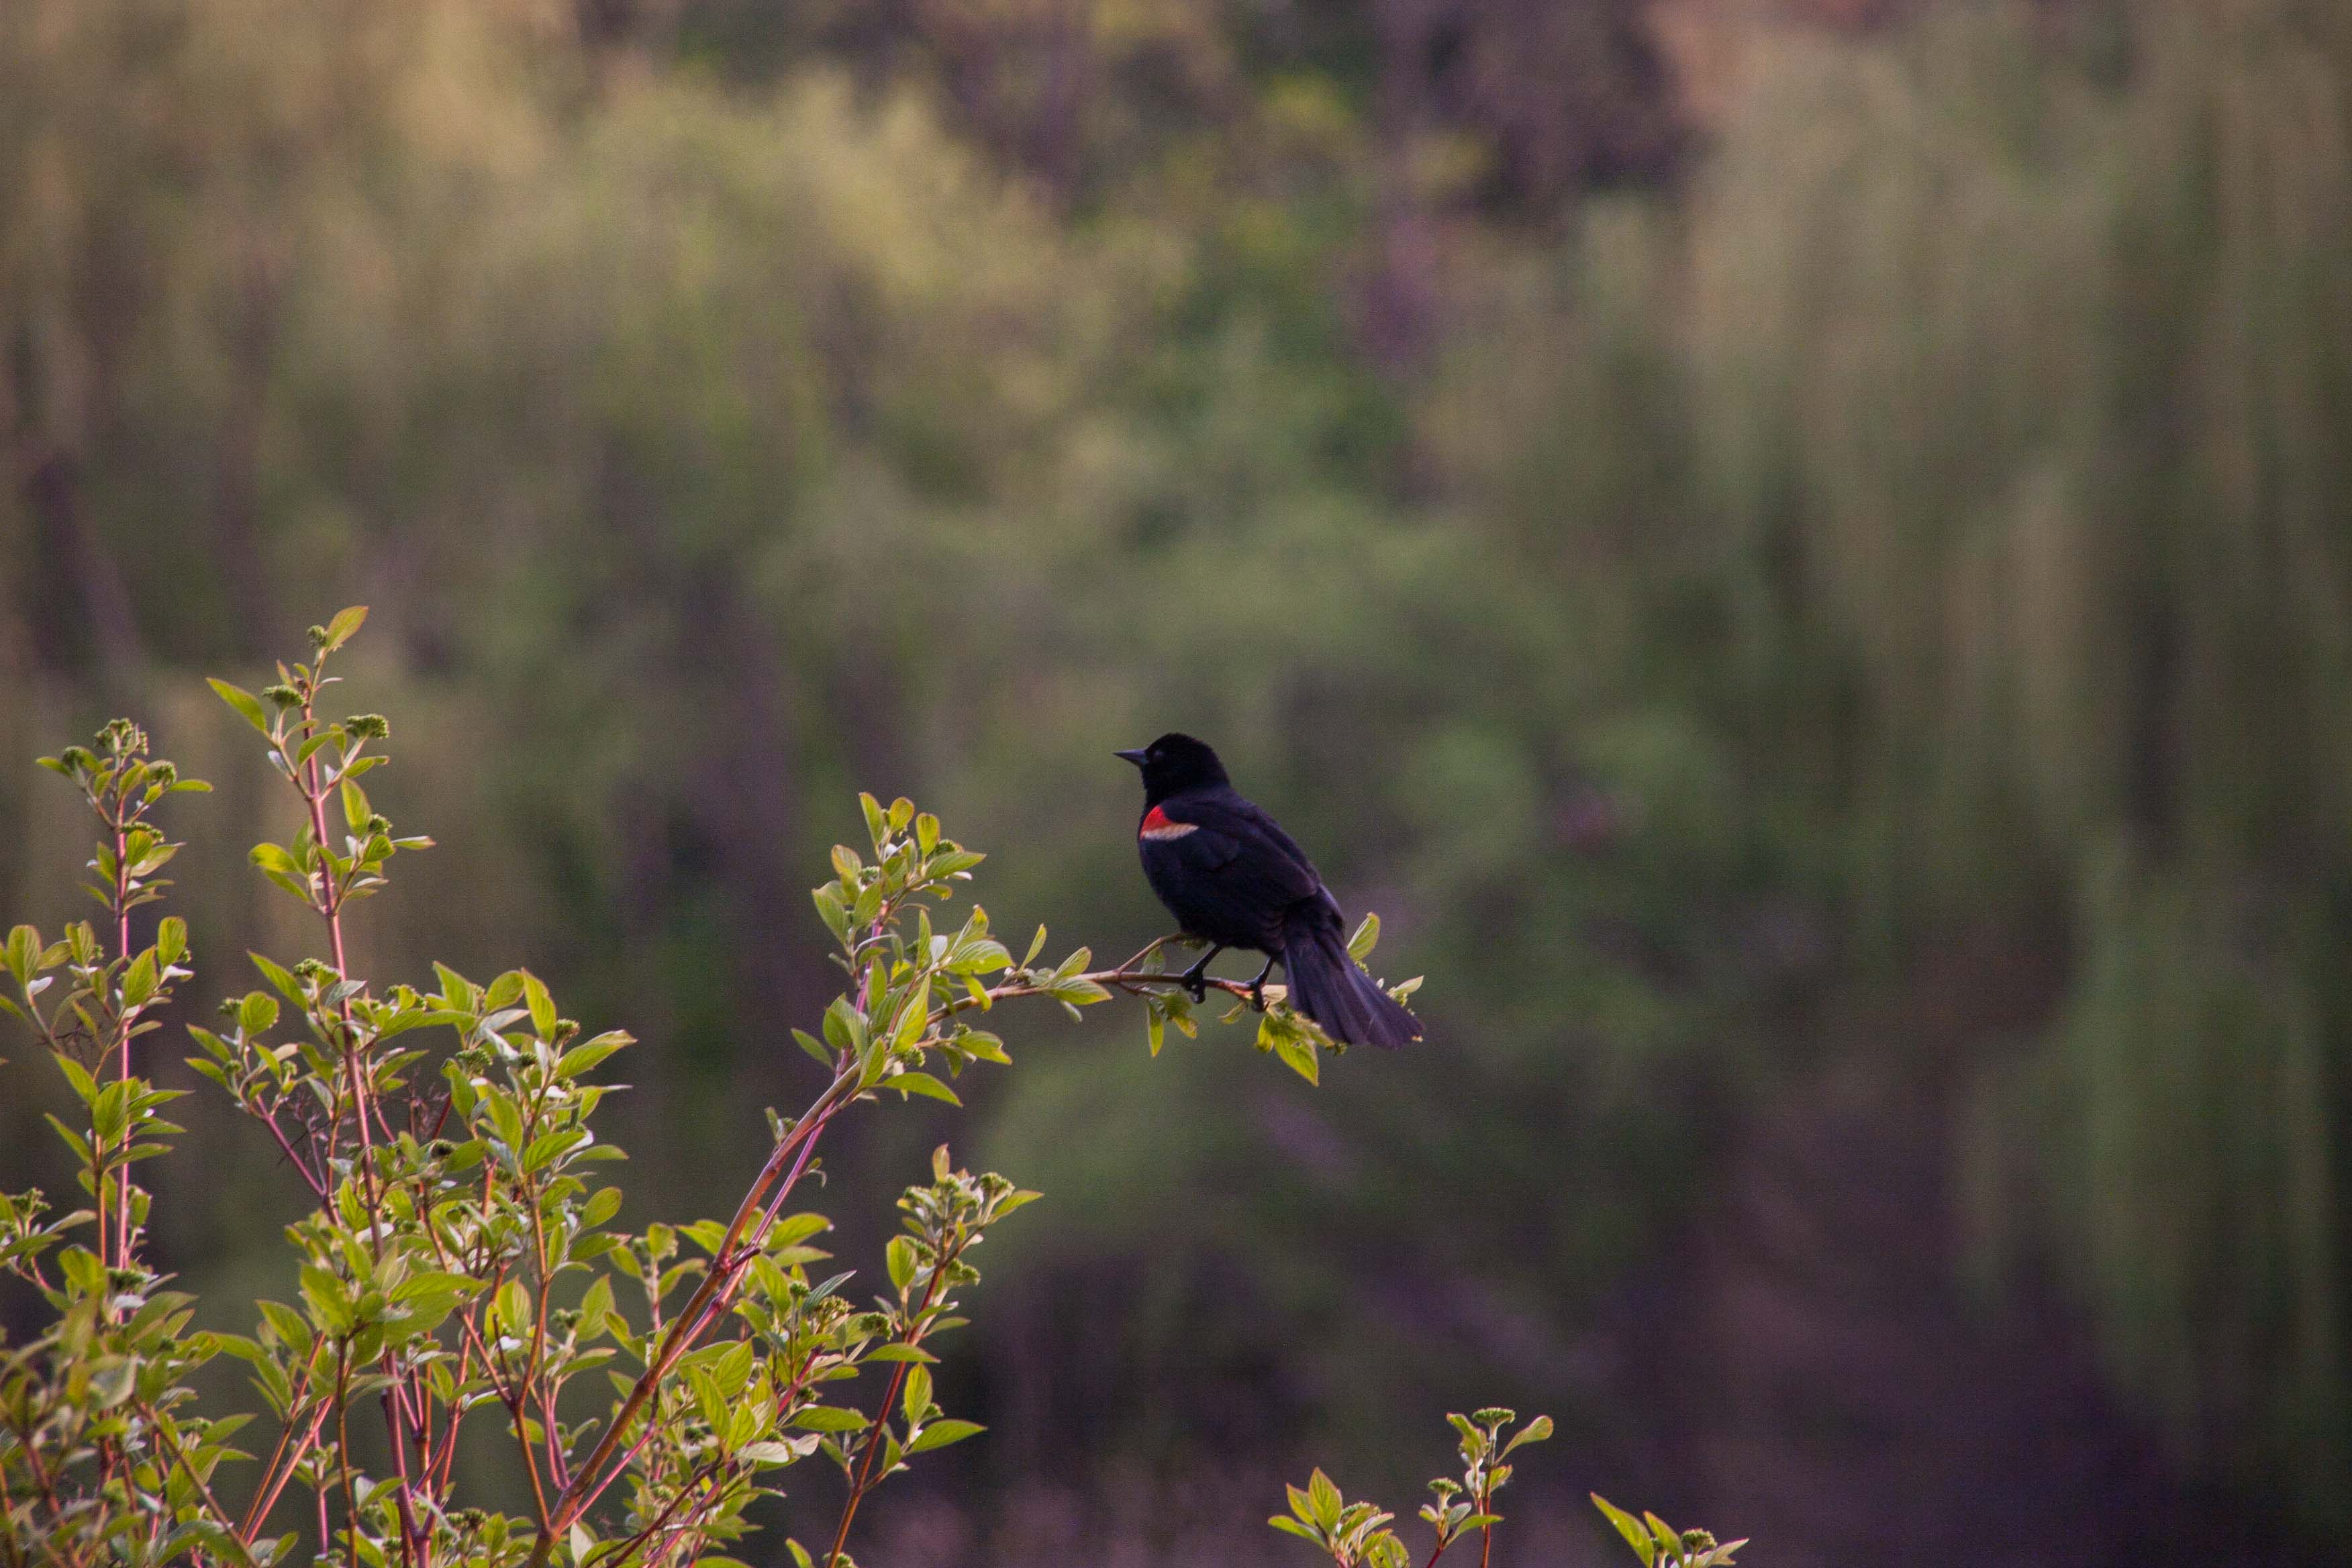 black bird with red primary spot, adjusted to normal but still dark colours